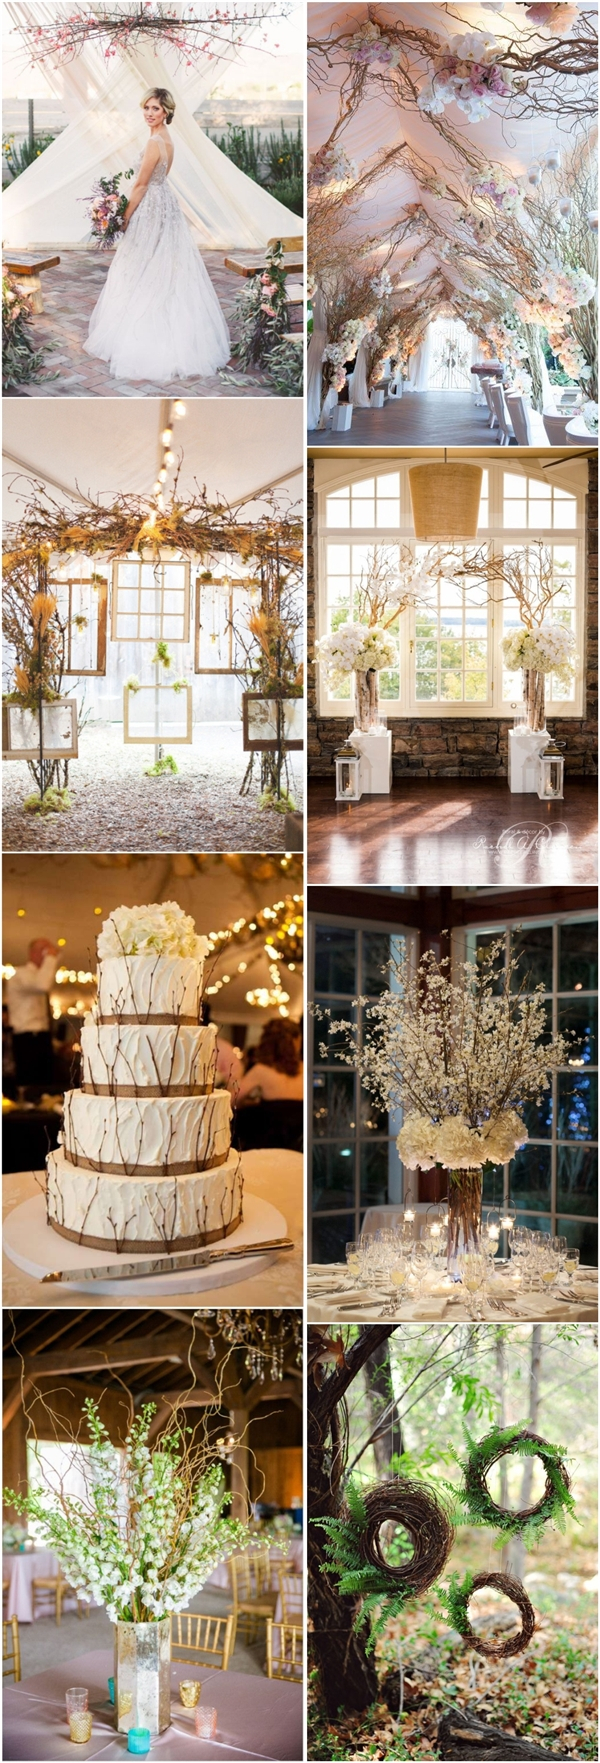 Fall Wedding Decoration Ideas 30 Chic Rustic Wedding Ideas With Tree Branches Tulle Chantilly